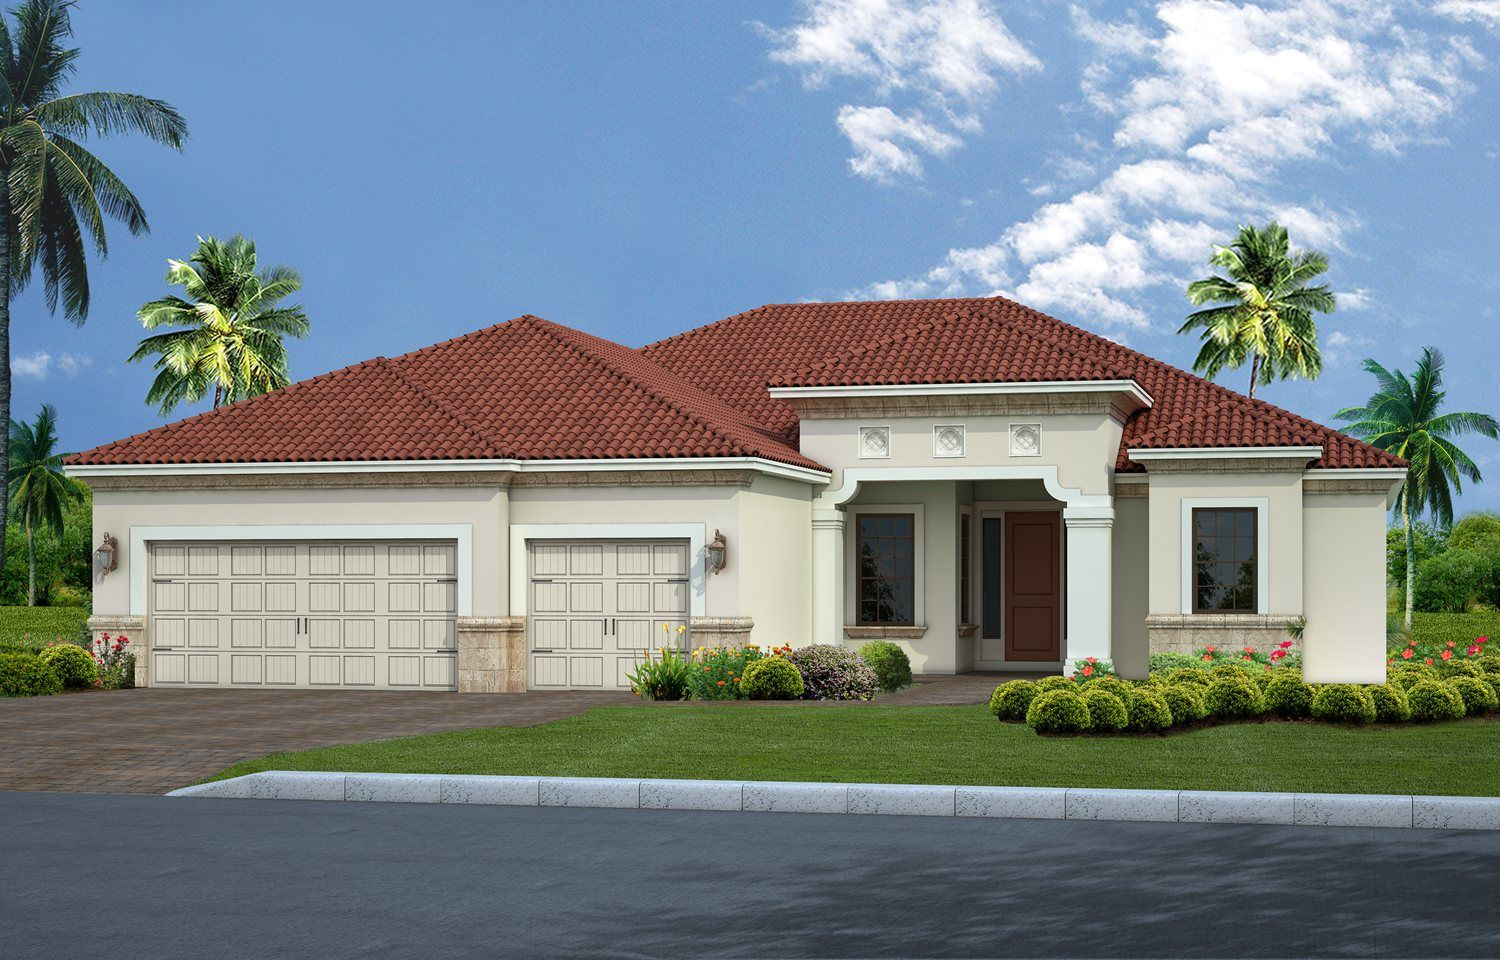 Single Family for Active at Captiva 26587 Raphis Royale Blvd Englewood, Florida 34223 United States